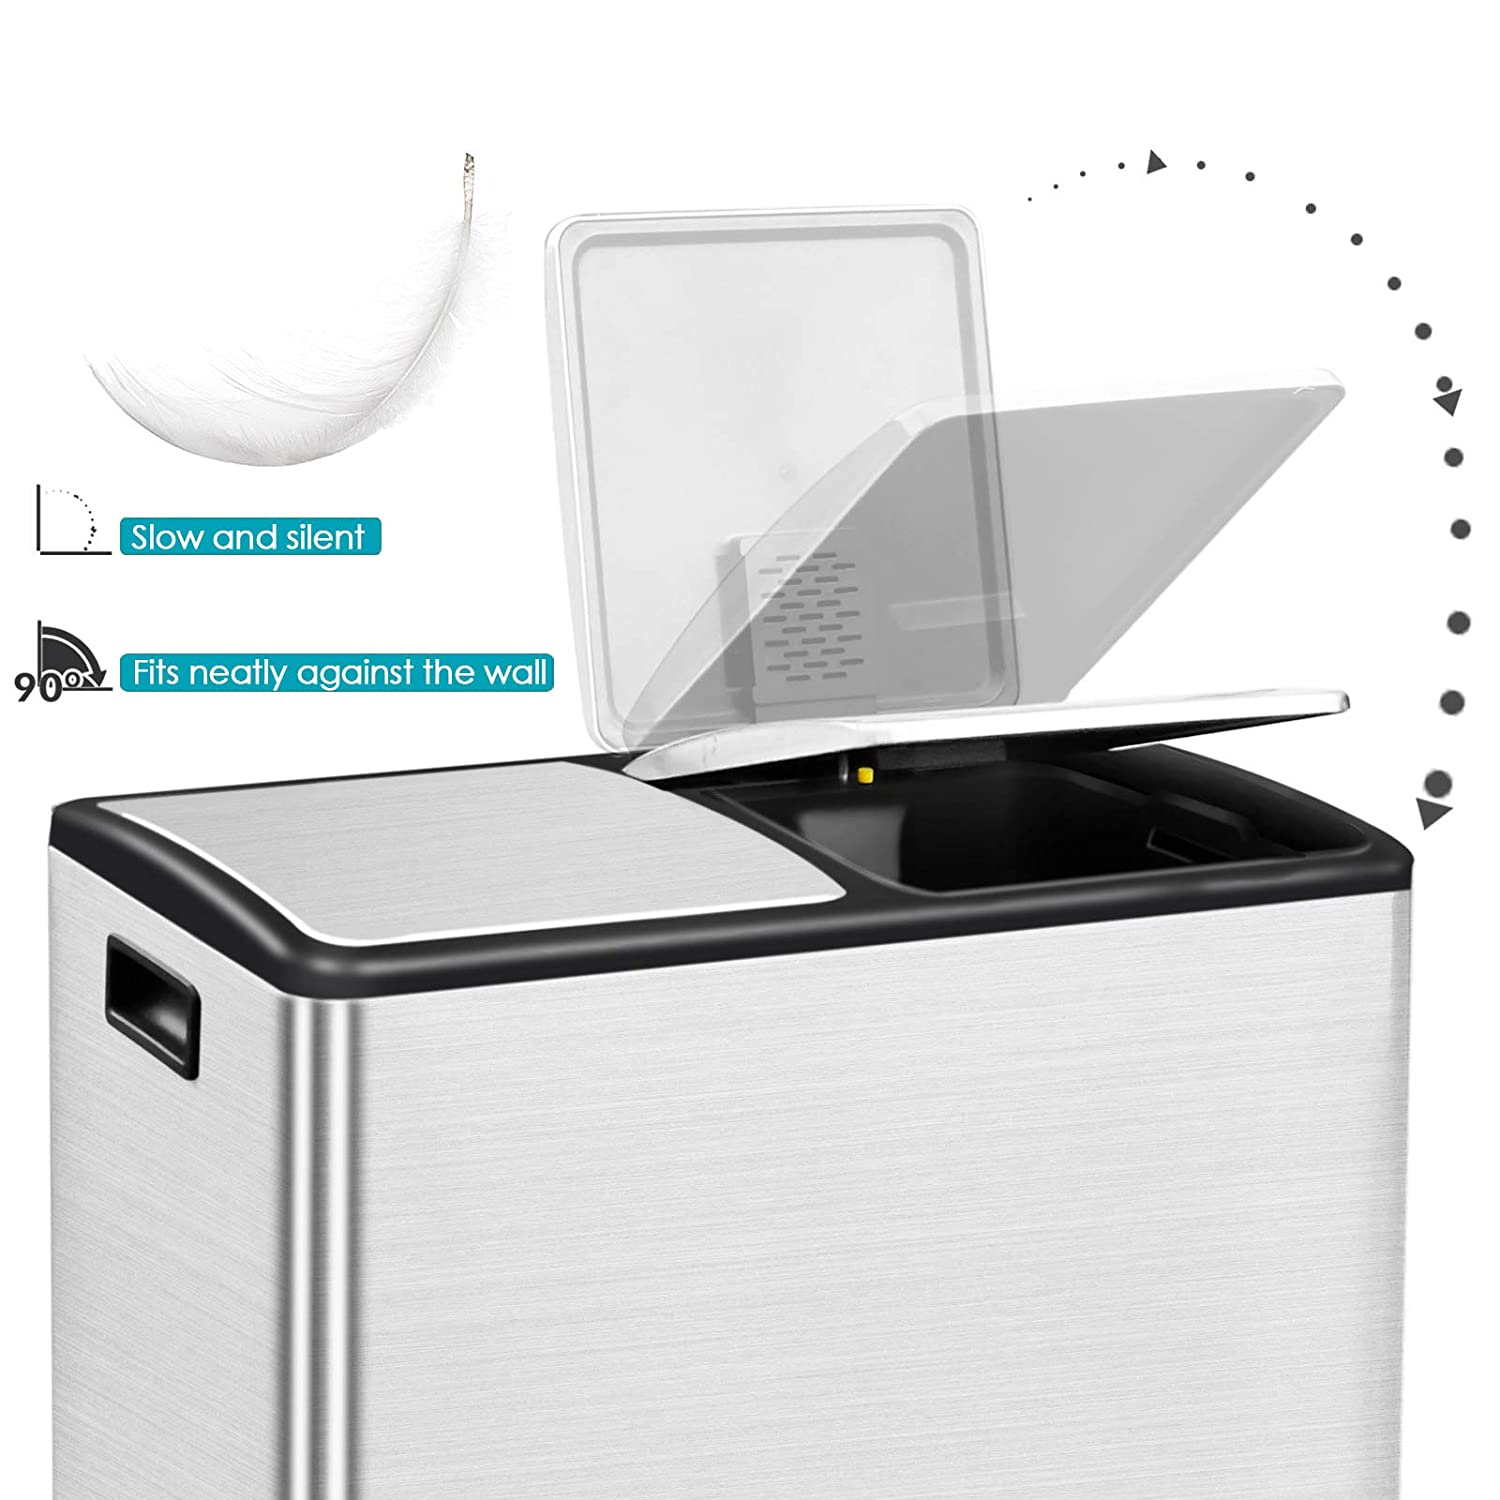 Buy Avv Kitchen Step Trash Can And Recycle Bin Combo Dual Garbage And Recycling Double Compartment Large Stainless Steel 16 Gallon 2 X 8 Gal Online In Indonesia B093w2p7w2